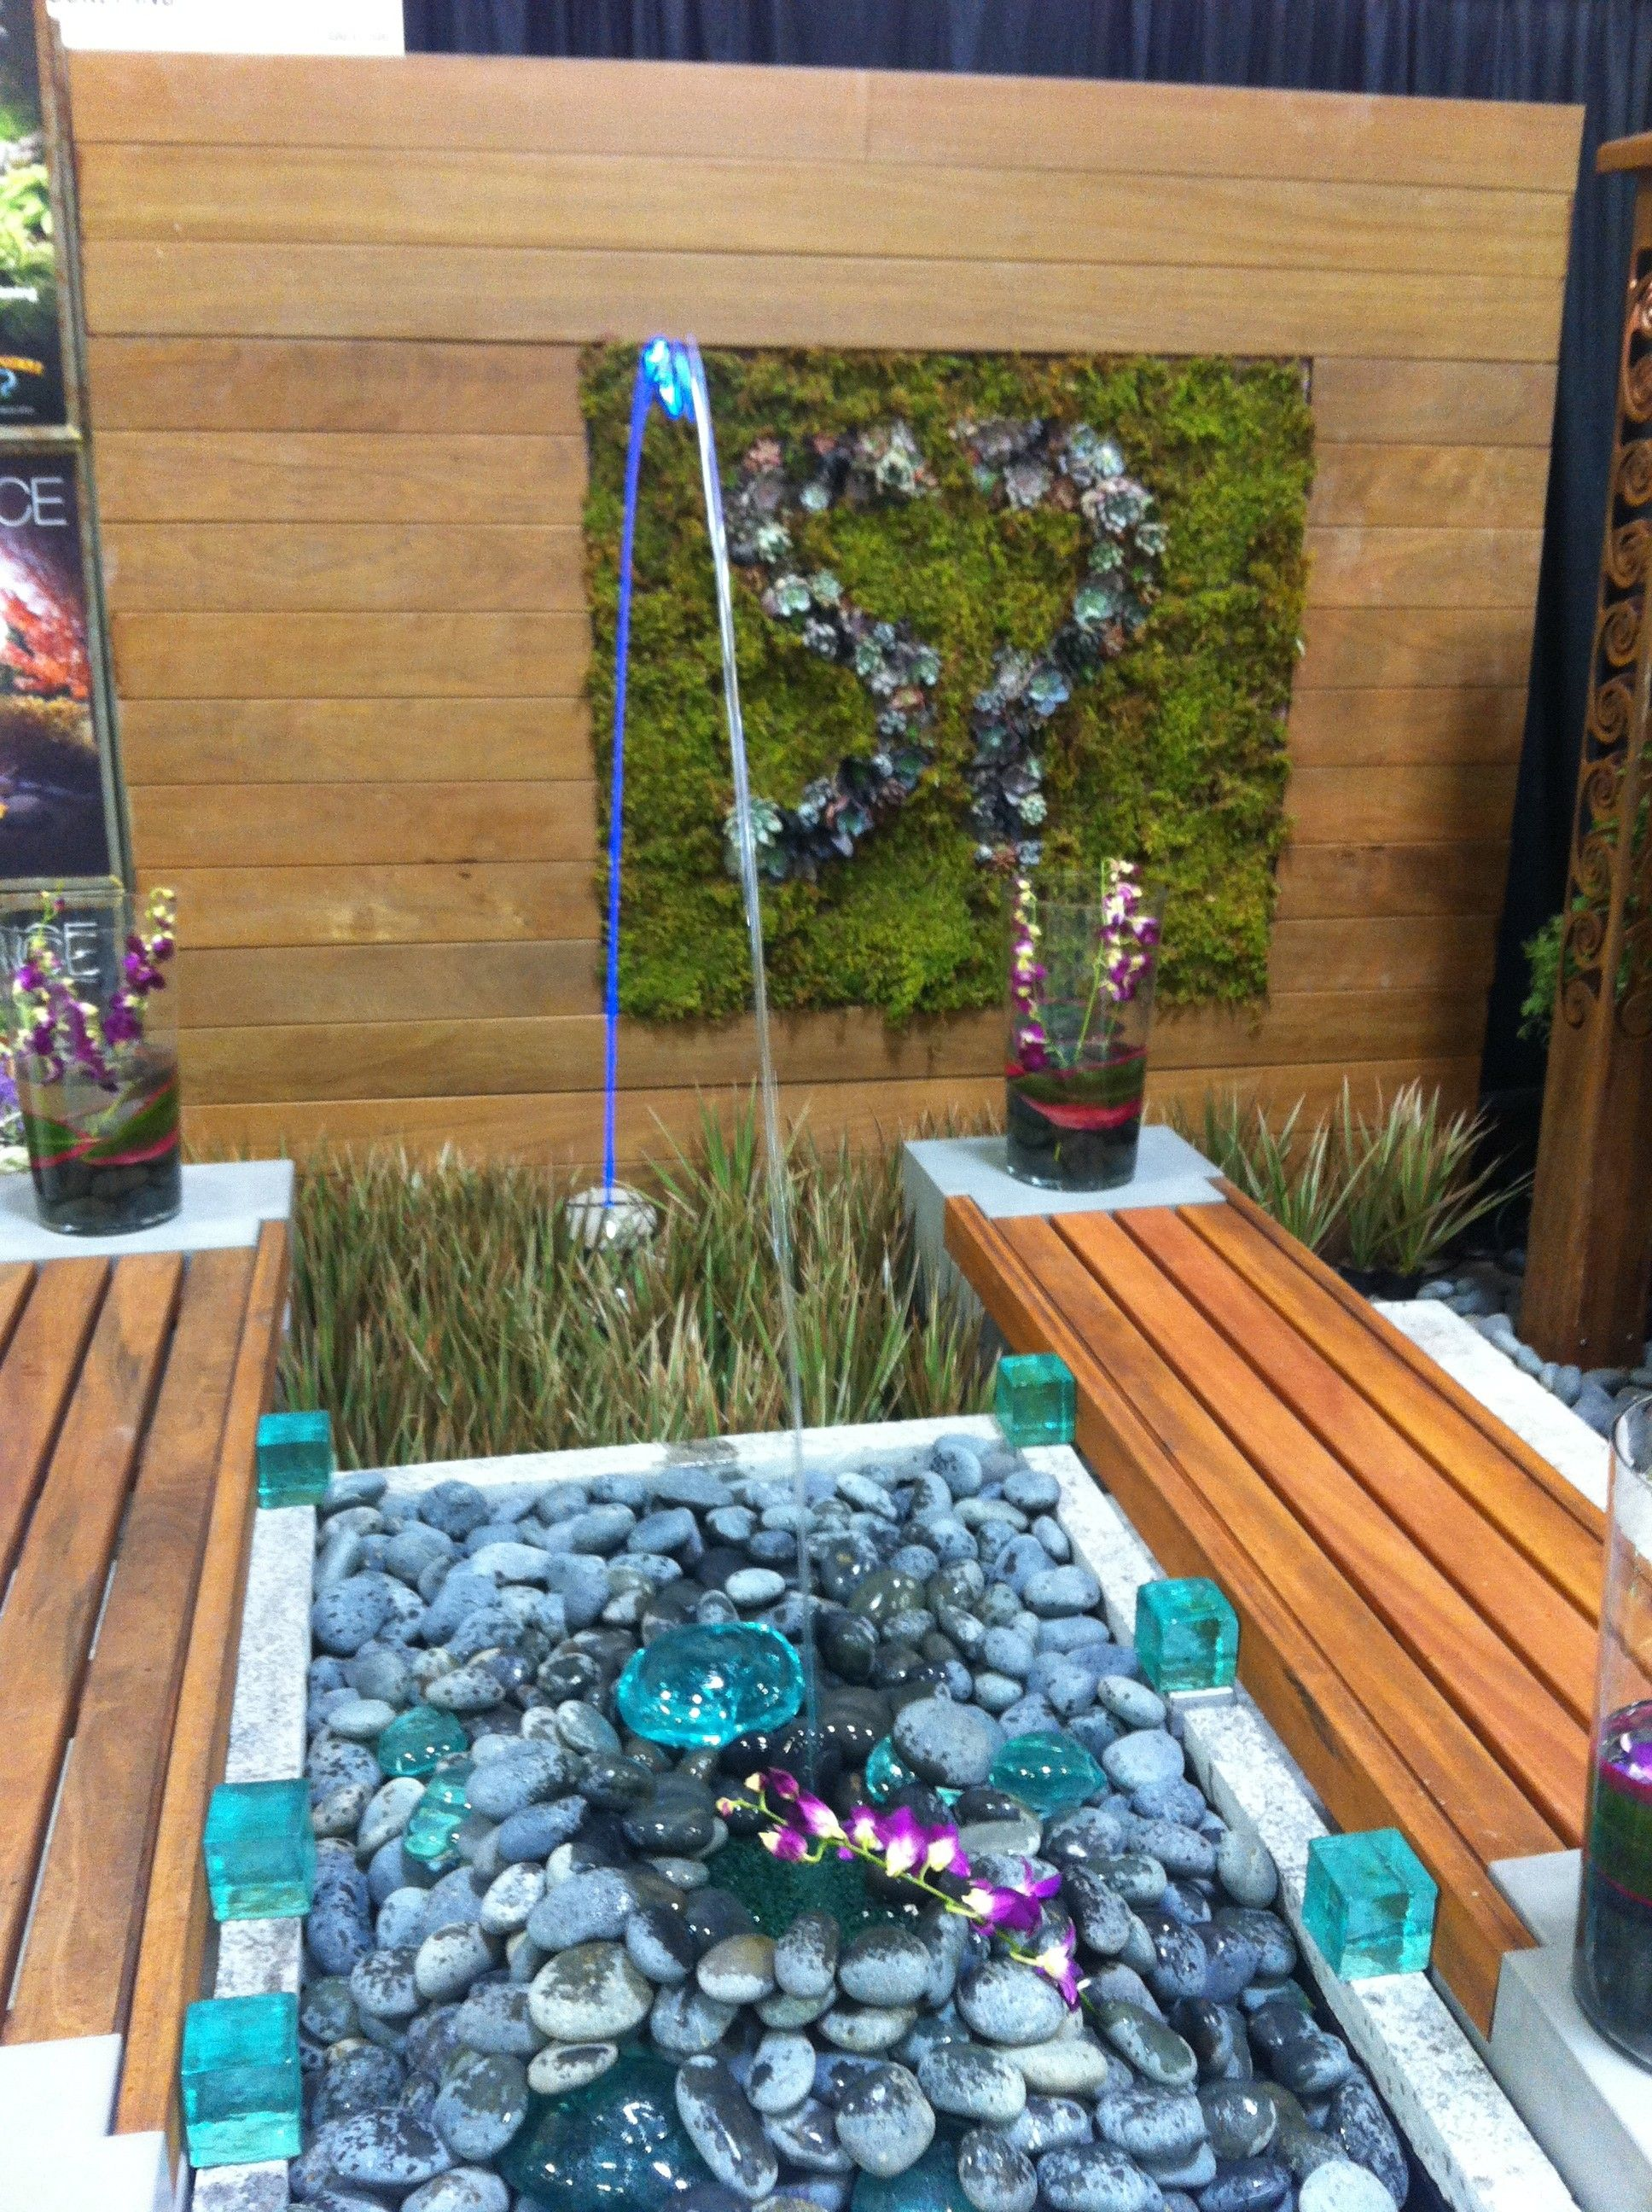 Laminar Fountain And Green Wall At Minneapolis Home And Garden Show